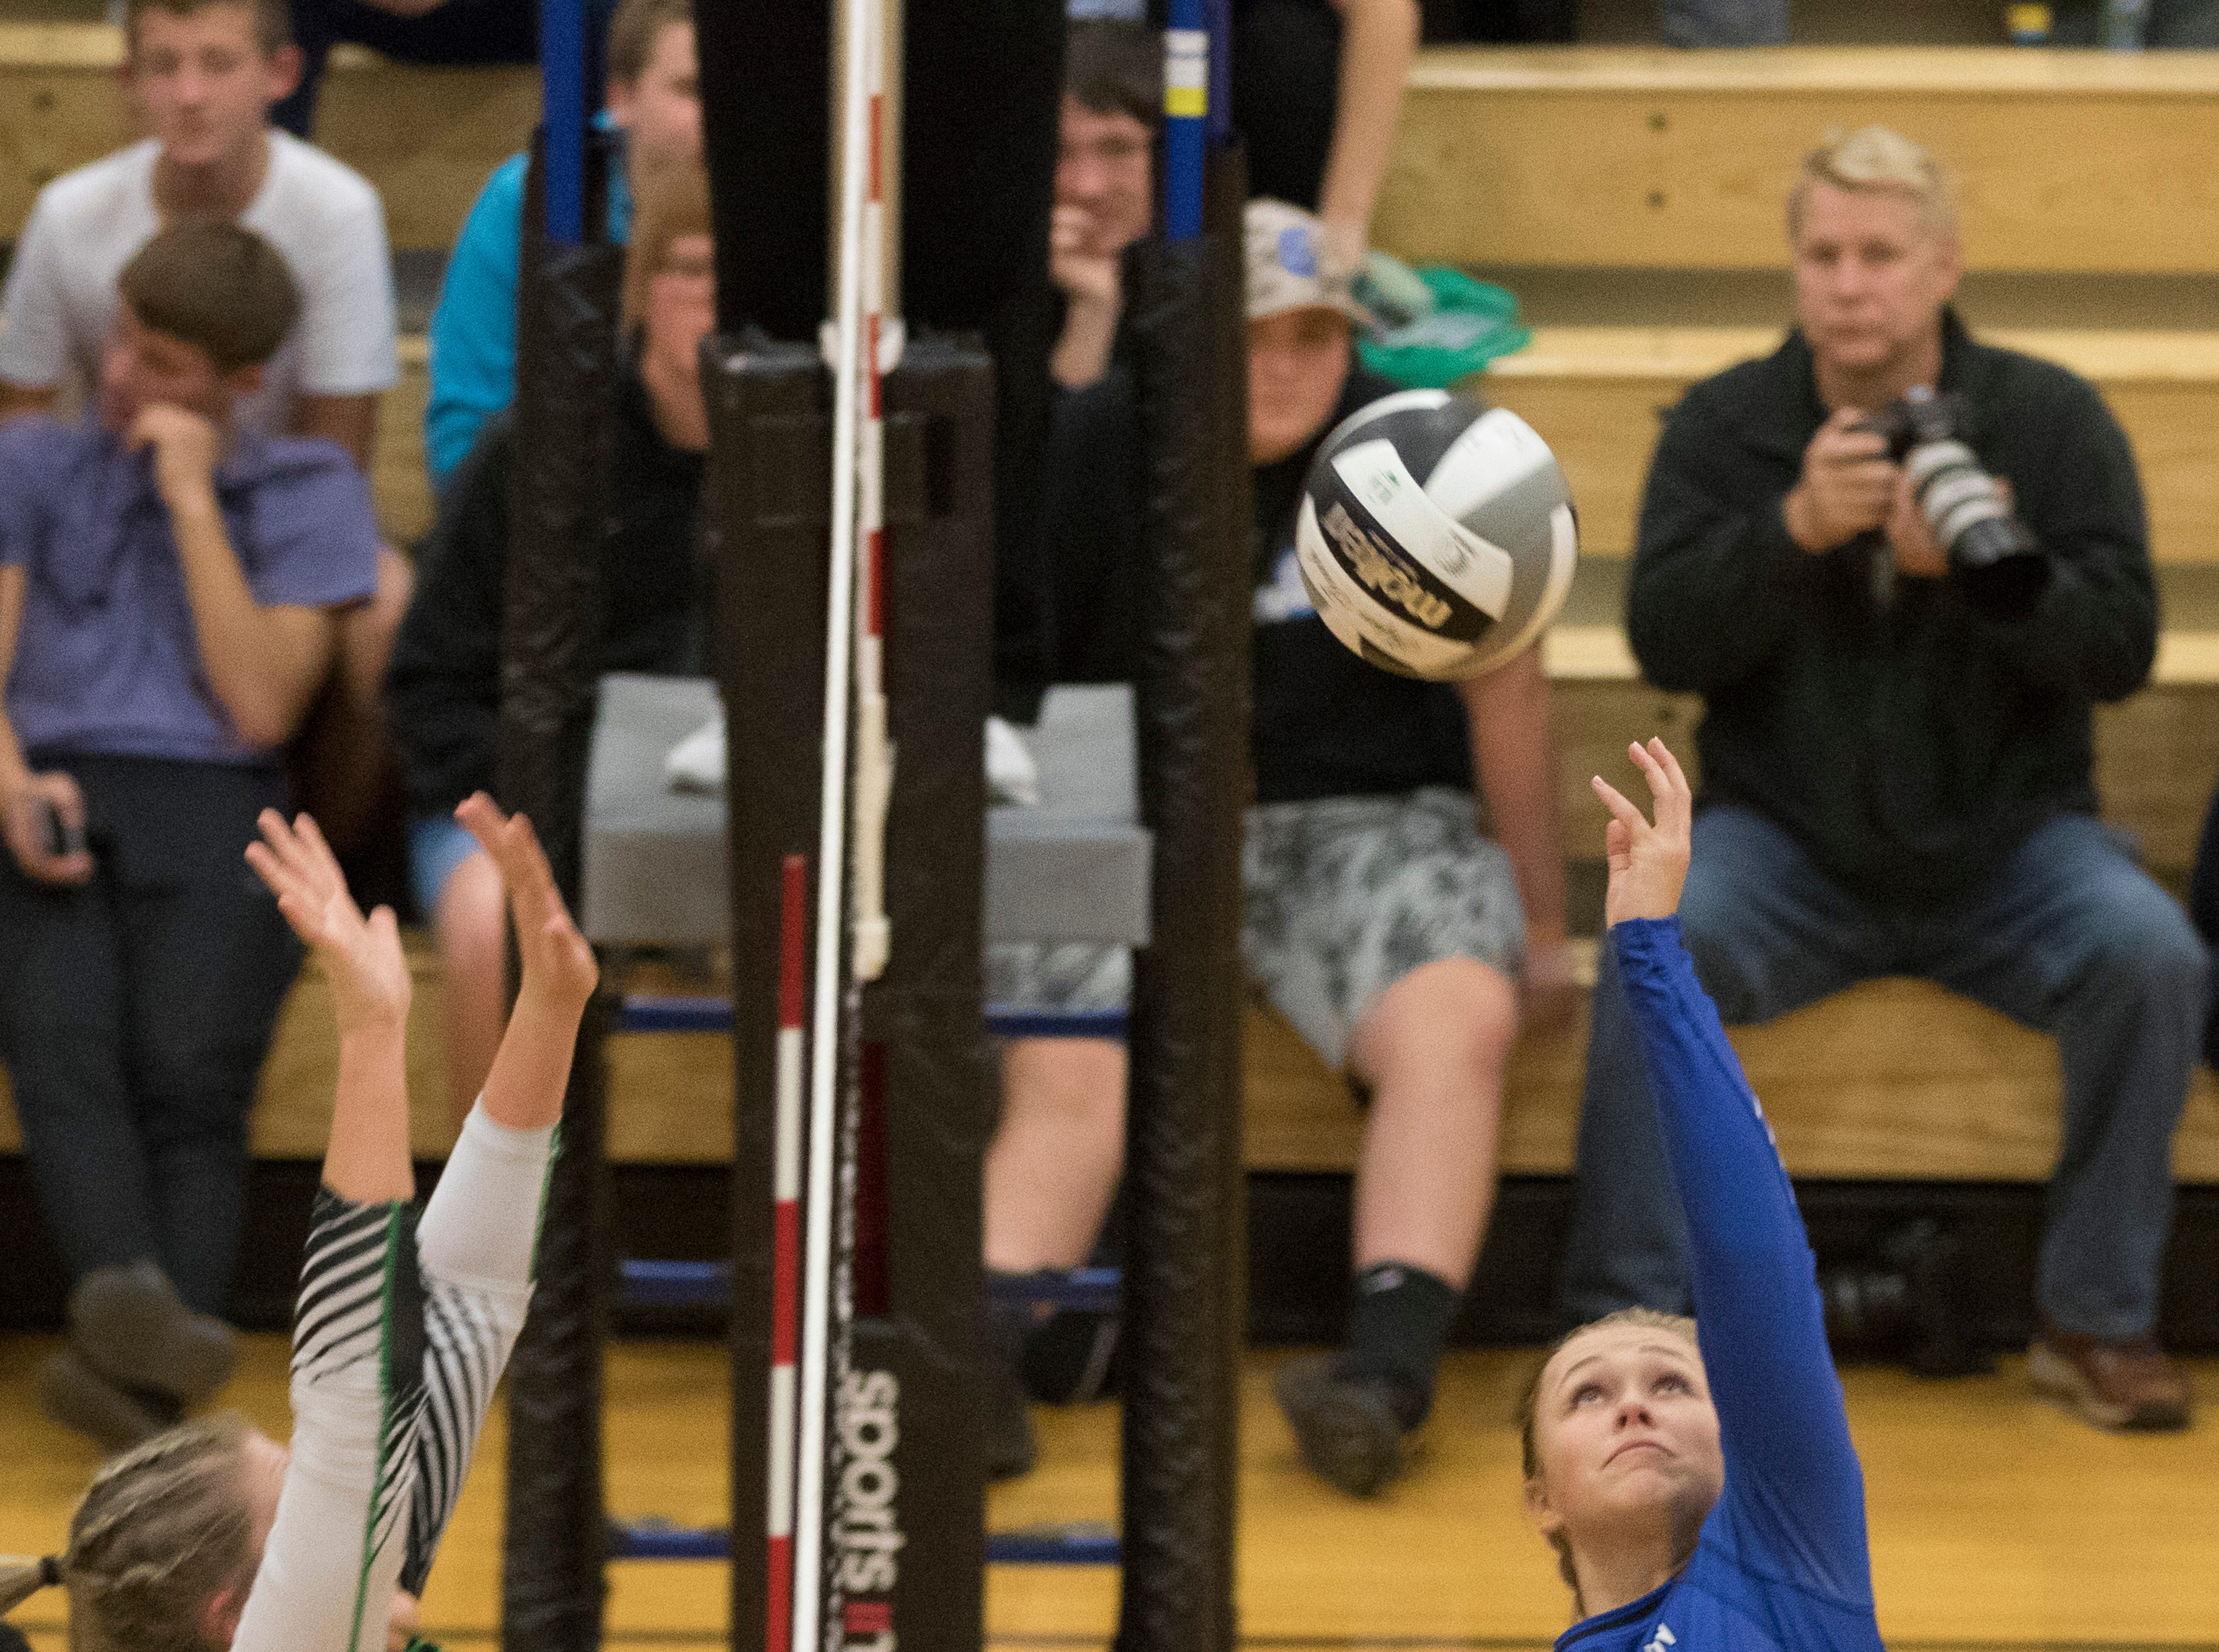 Southeastern defeated Huntington Wednesday night 3-2 at Waverly High School in Waverly, Ohio, advancing them to the district finals in Division III.